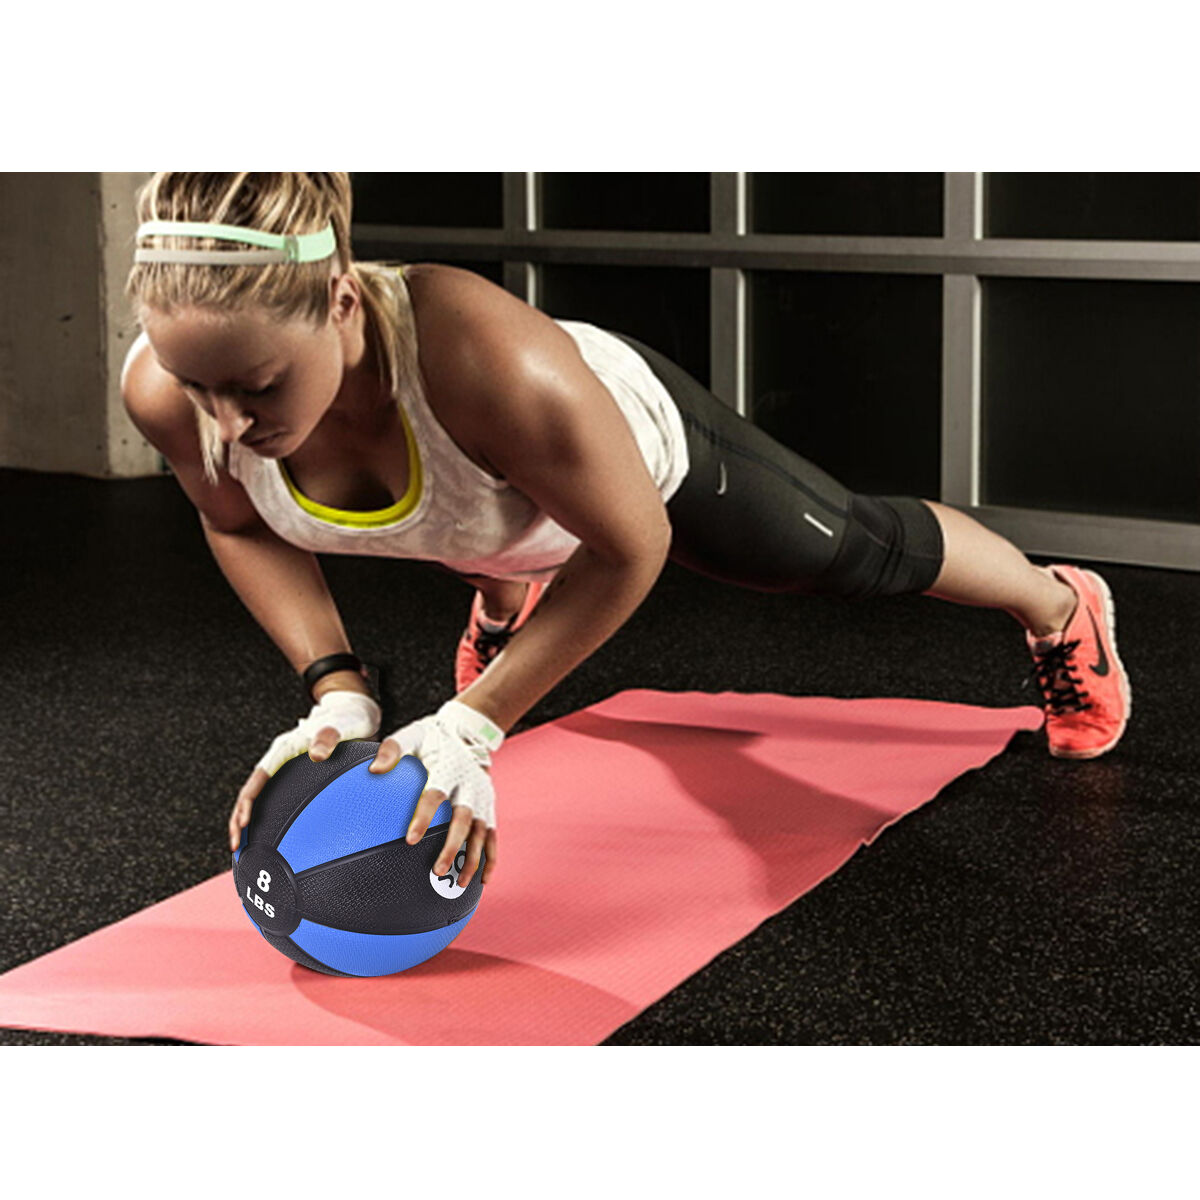 Fitness-Weighted-Medicine-Ball-Wall-Balance-Training-Muscle-Build-4-6-8-10-12lbs thumbnail 30